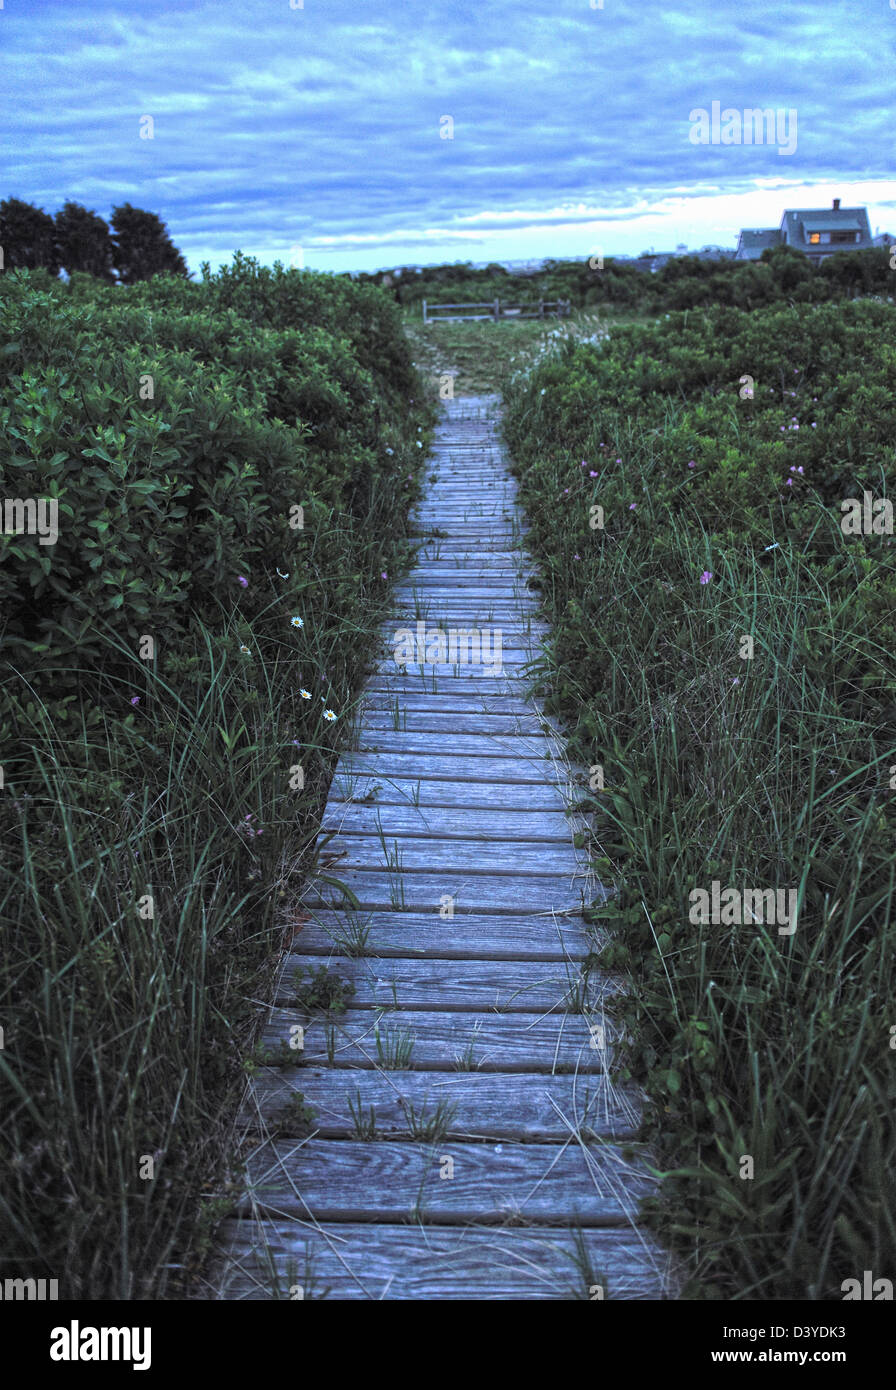 Path to beach from beach house in the distance, Madaket Harbor, Nantucket Island - Stock Image